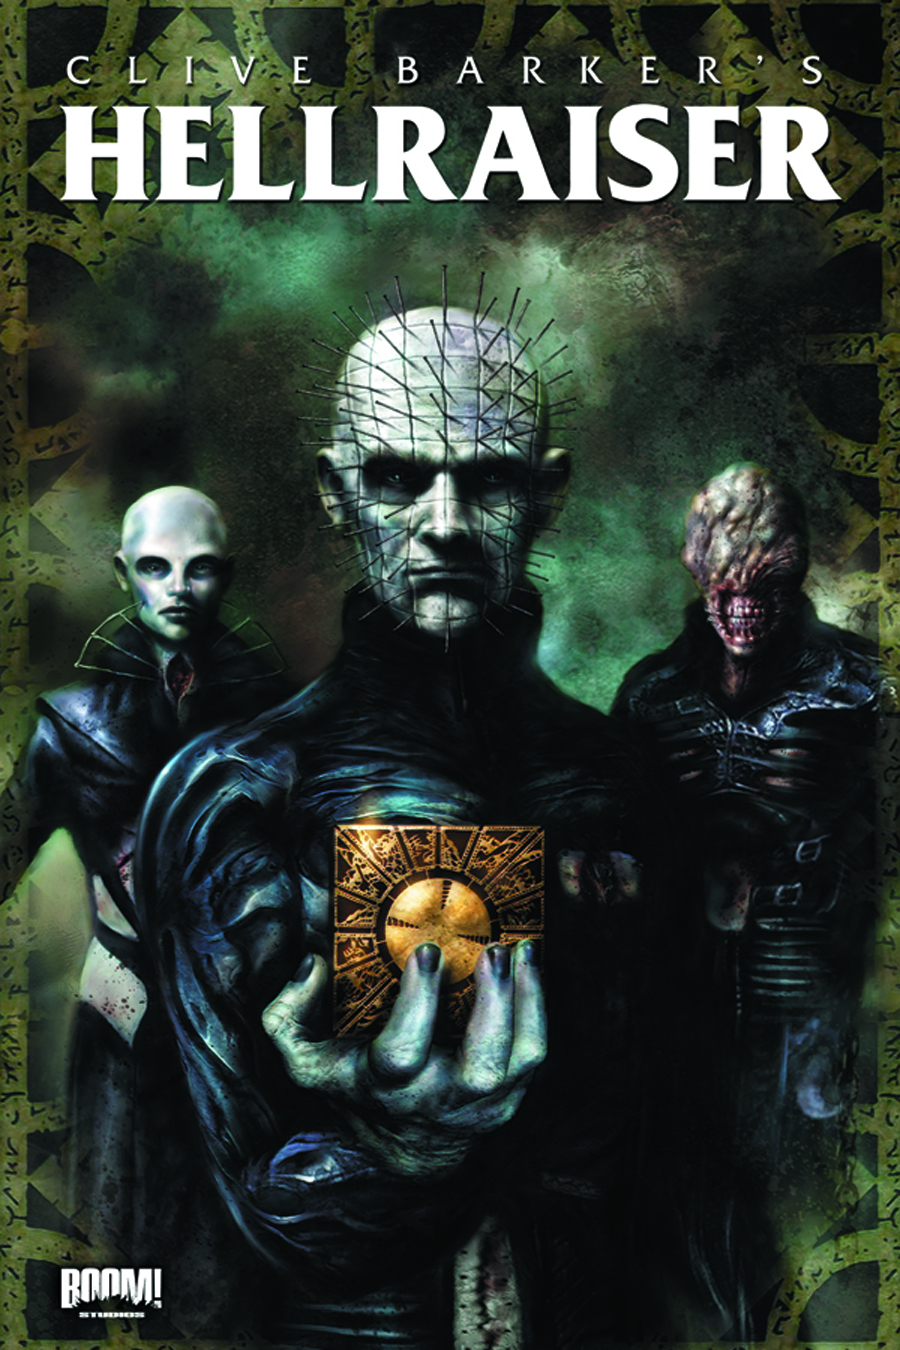 HELLRAISER TP VOL 02